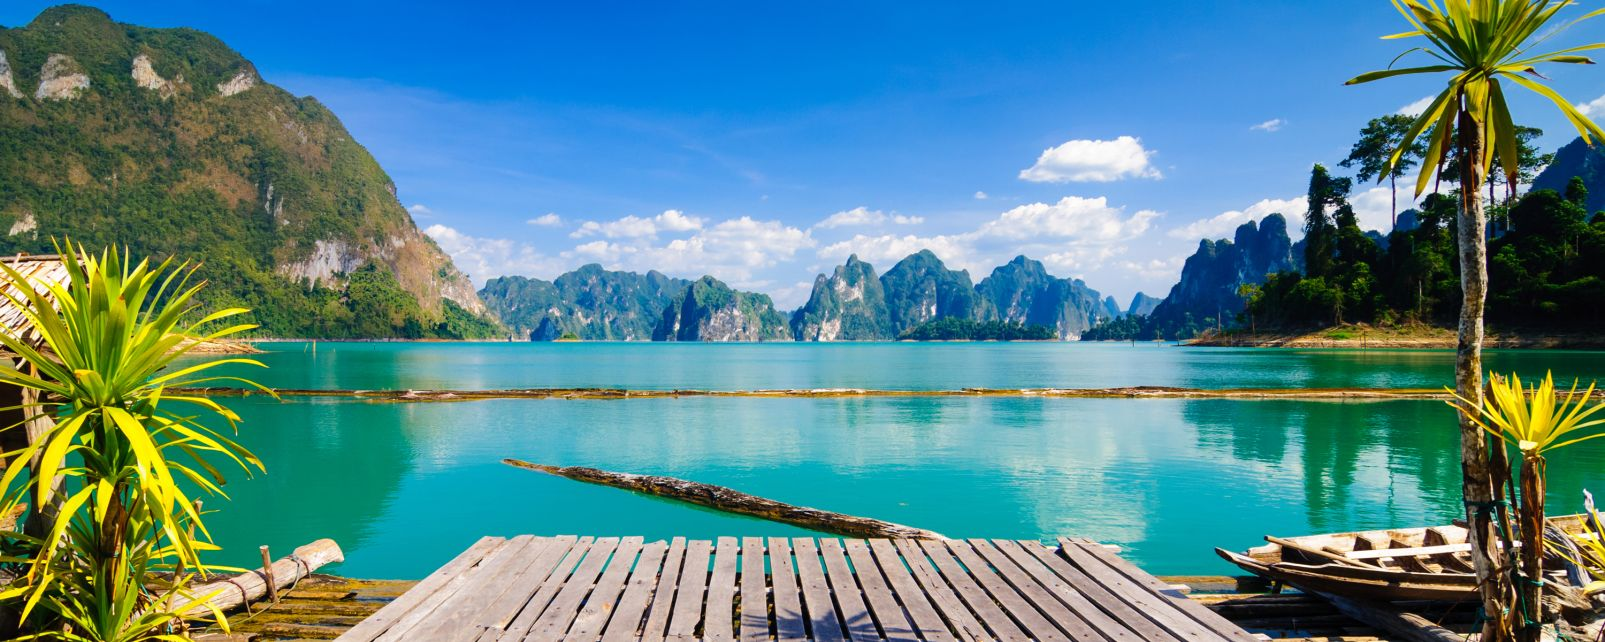 Best 3d Hd Wallpapers For Laptop Le Parc National De Khao Sok Tha 239 Lande